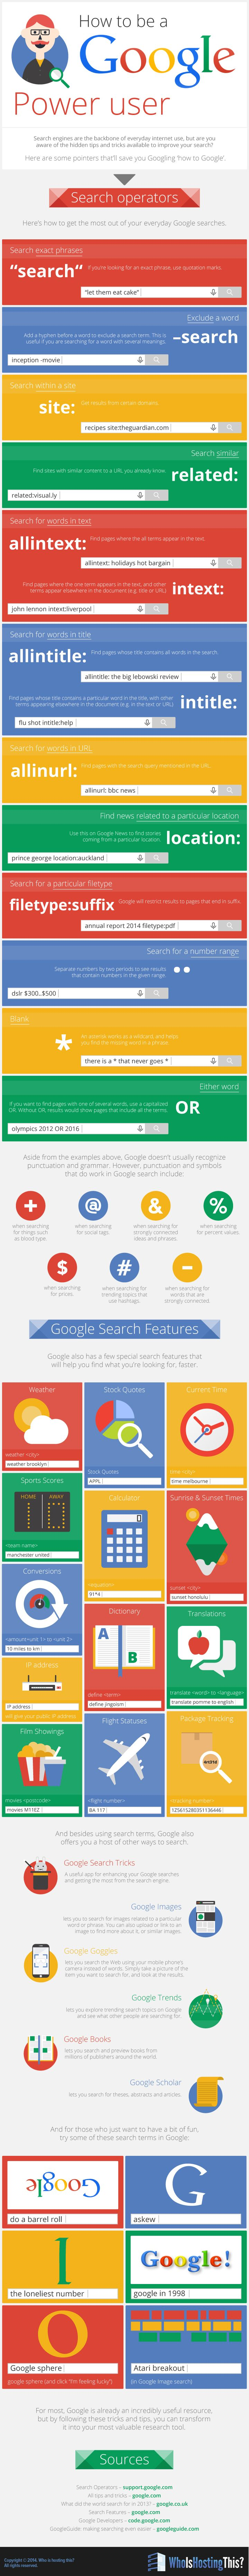 Get Exactly What You Asked For On Google Using These Tips #Infograpic - Some pointers that will save you from Googling 'how to #Google.""